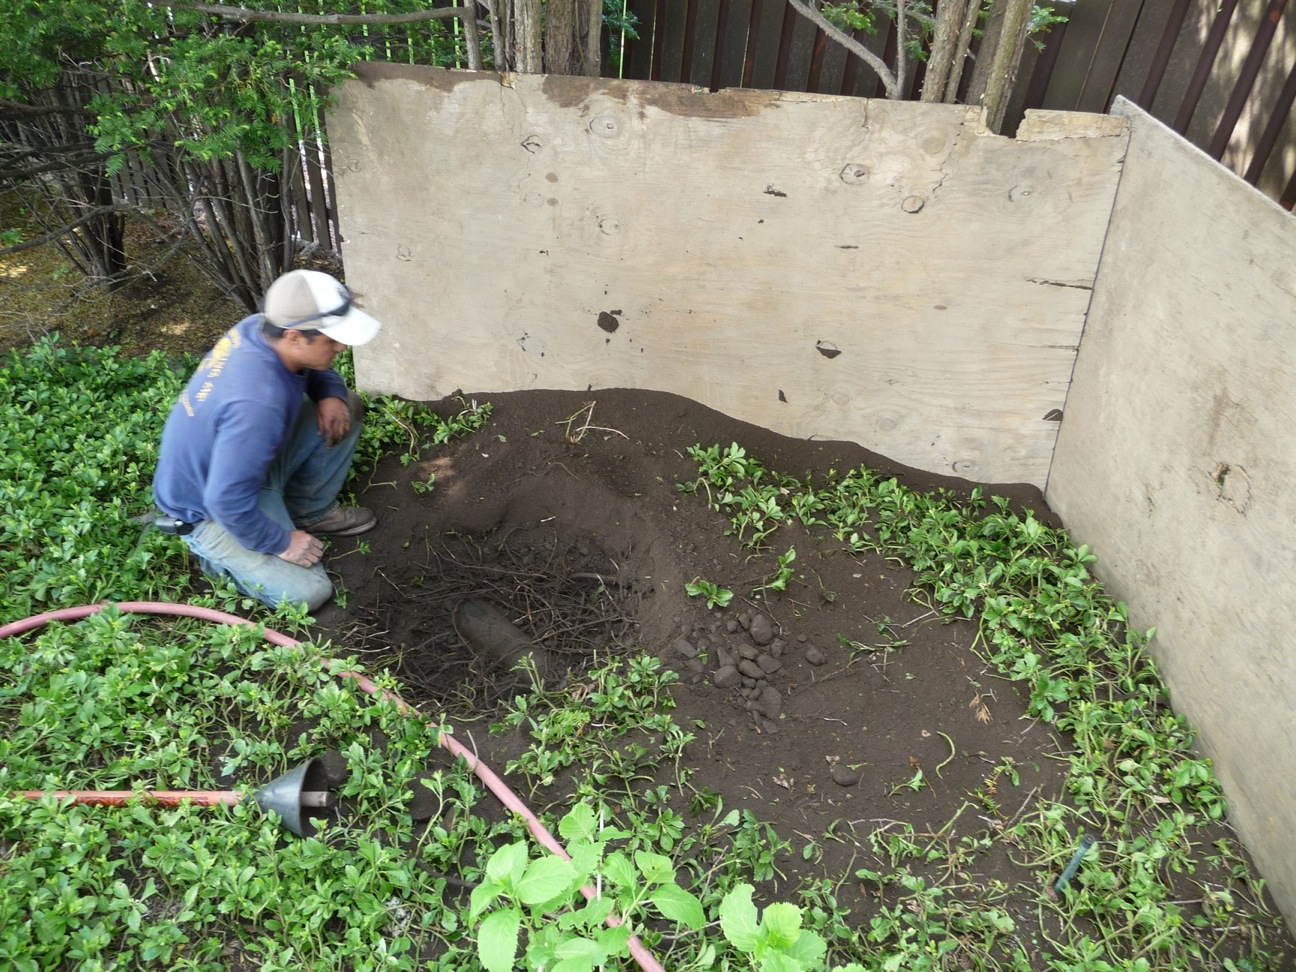 Holes for holly transplants were dug by air tool, to minimize disturbance to the roots of the treeform yew hedge behind the plywood.